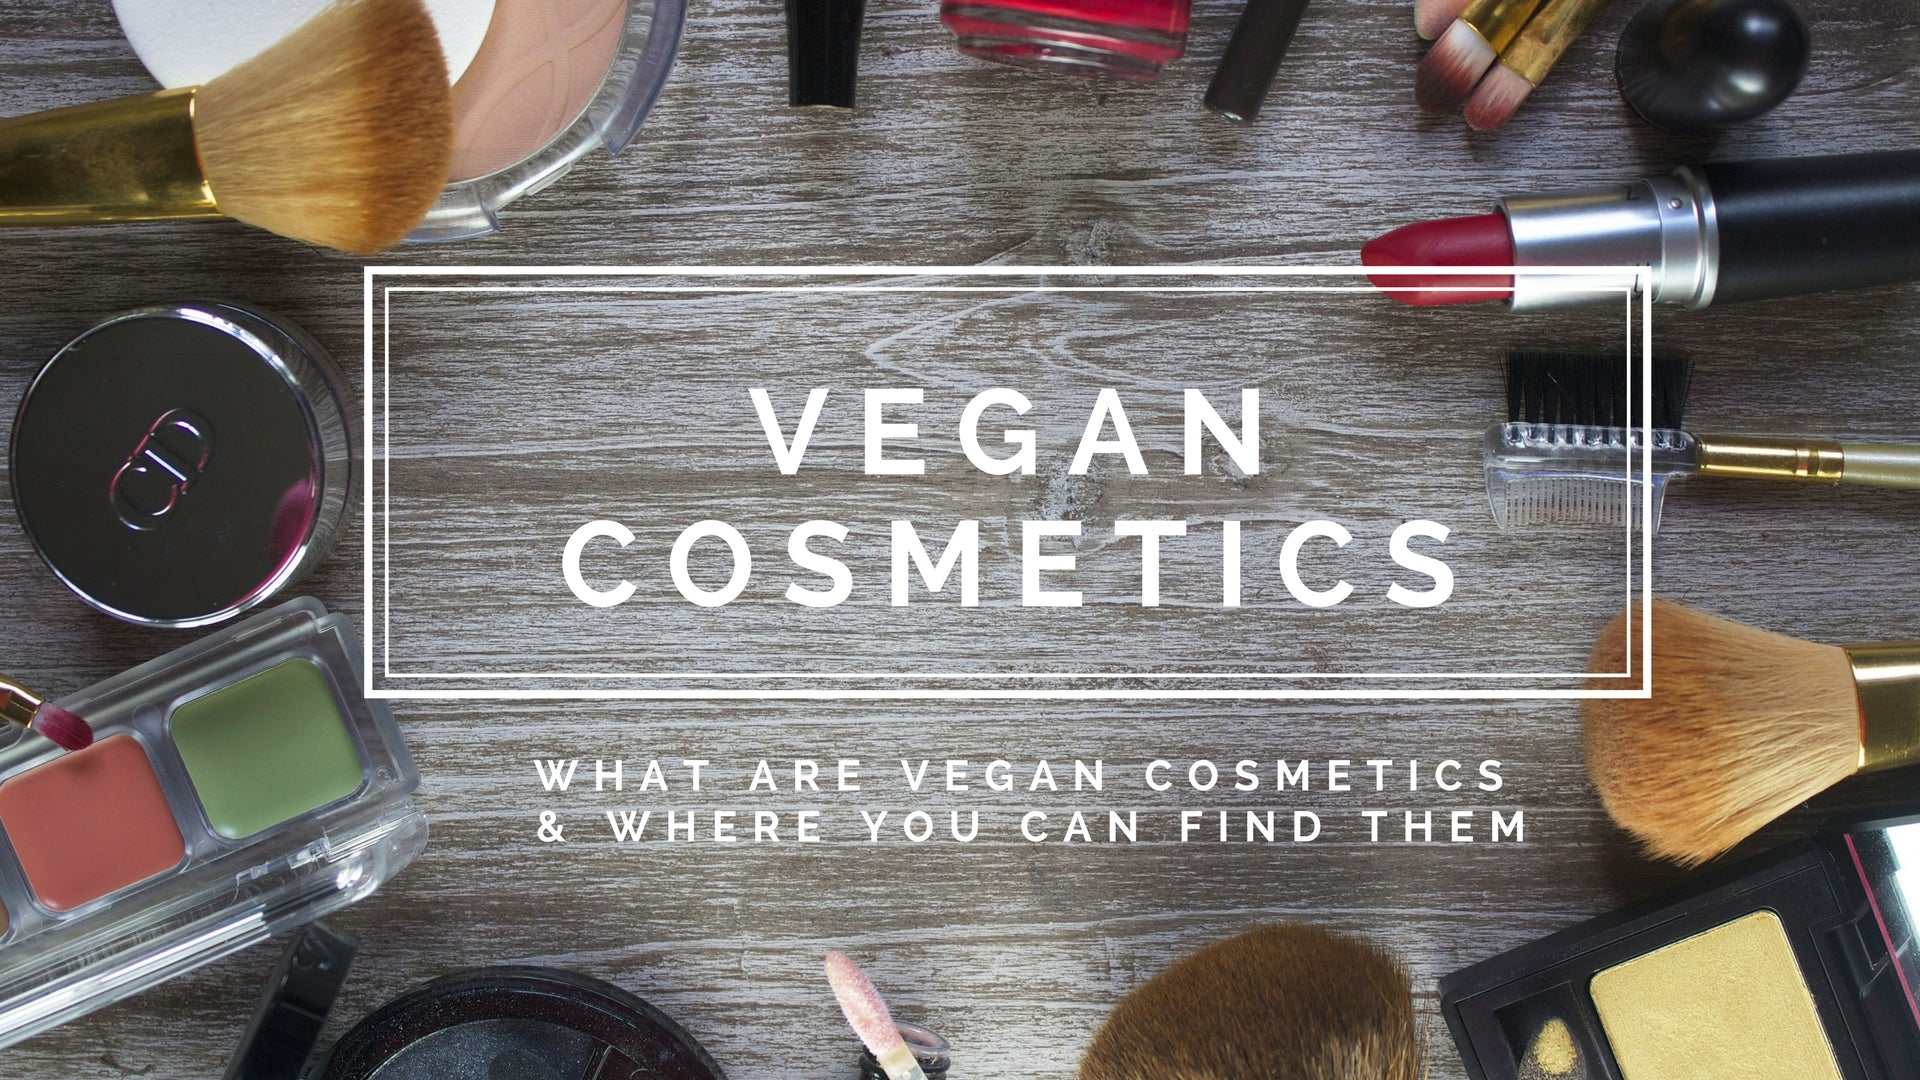 VEGAN COSMETICS - What are vegan cosmetics & where you can find them